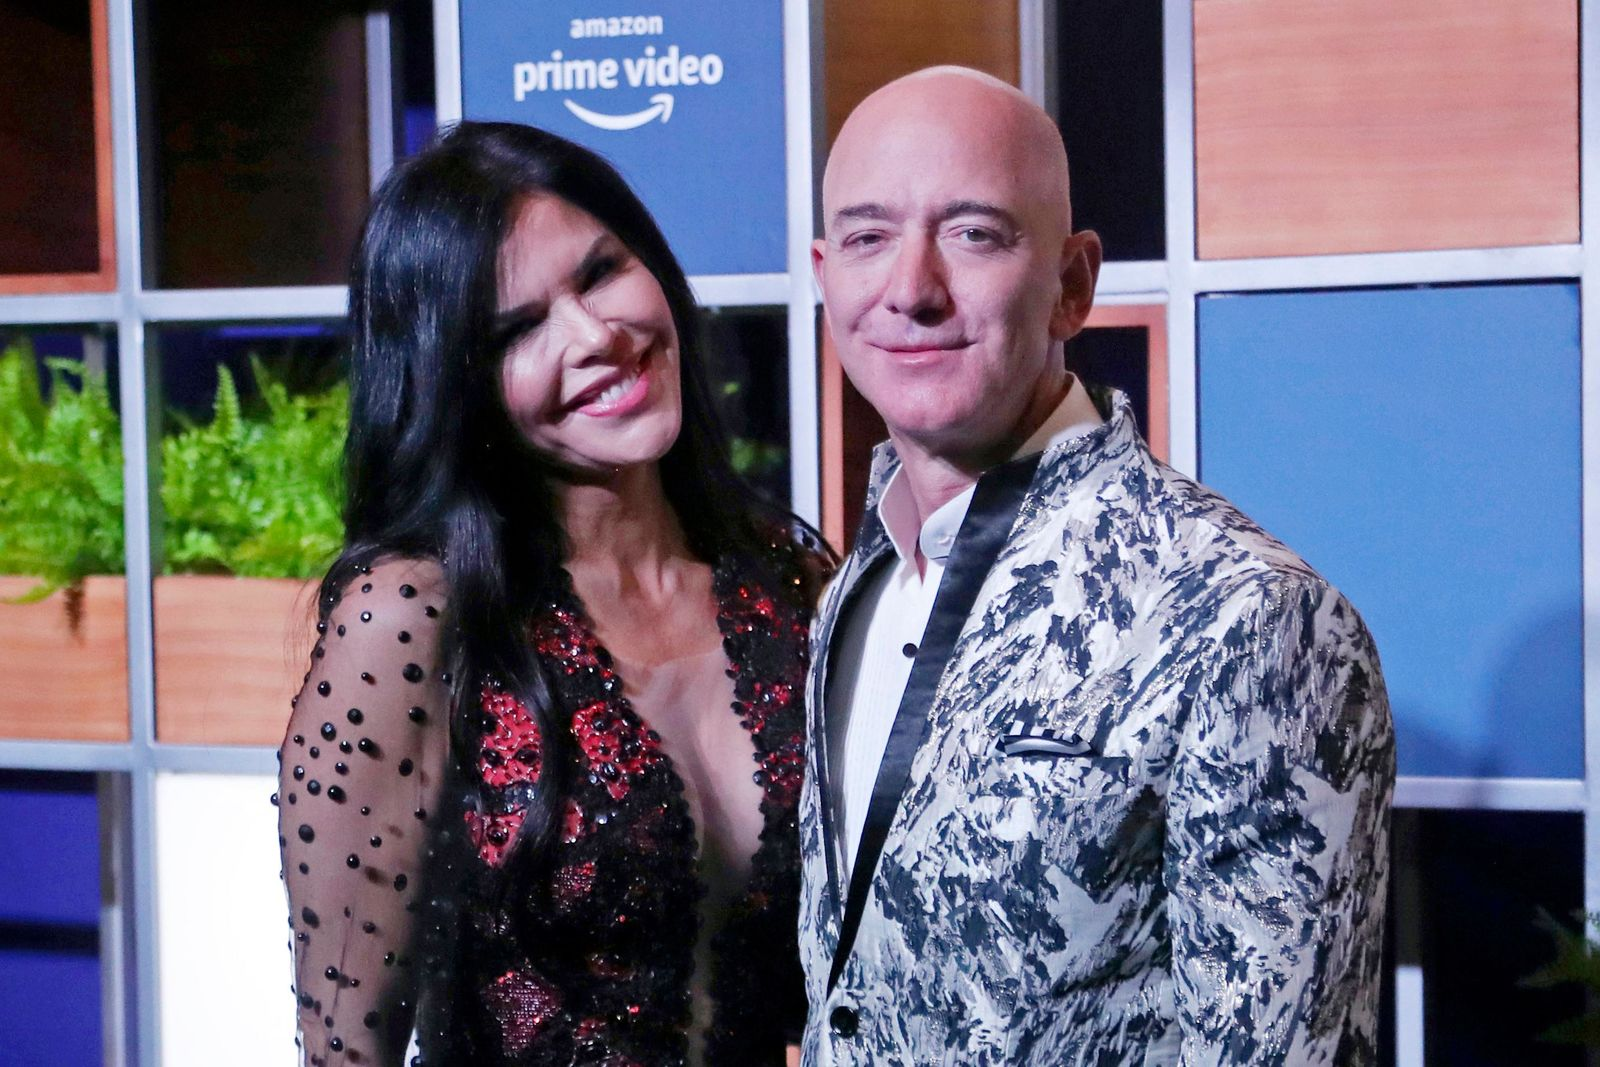 FILE - In this Jan. 16, 2020, file photo, Amazon CEO Jeff Bezos, right and his girlfriend Lauren Sanchez poses for photographs during a blue carpet event organized by Amazon Prime Video in Mumbai, India. (AP Photo/Rafiq Maqbool, File)